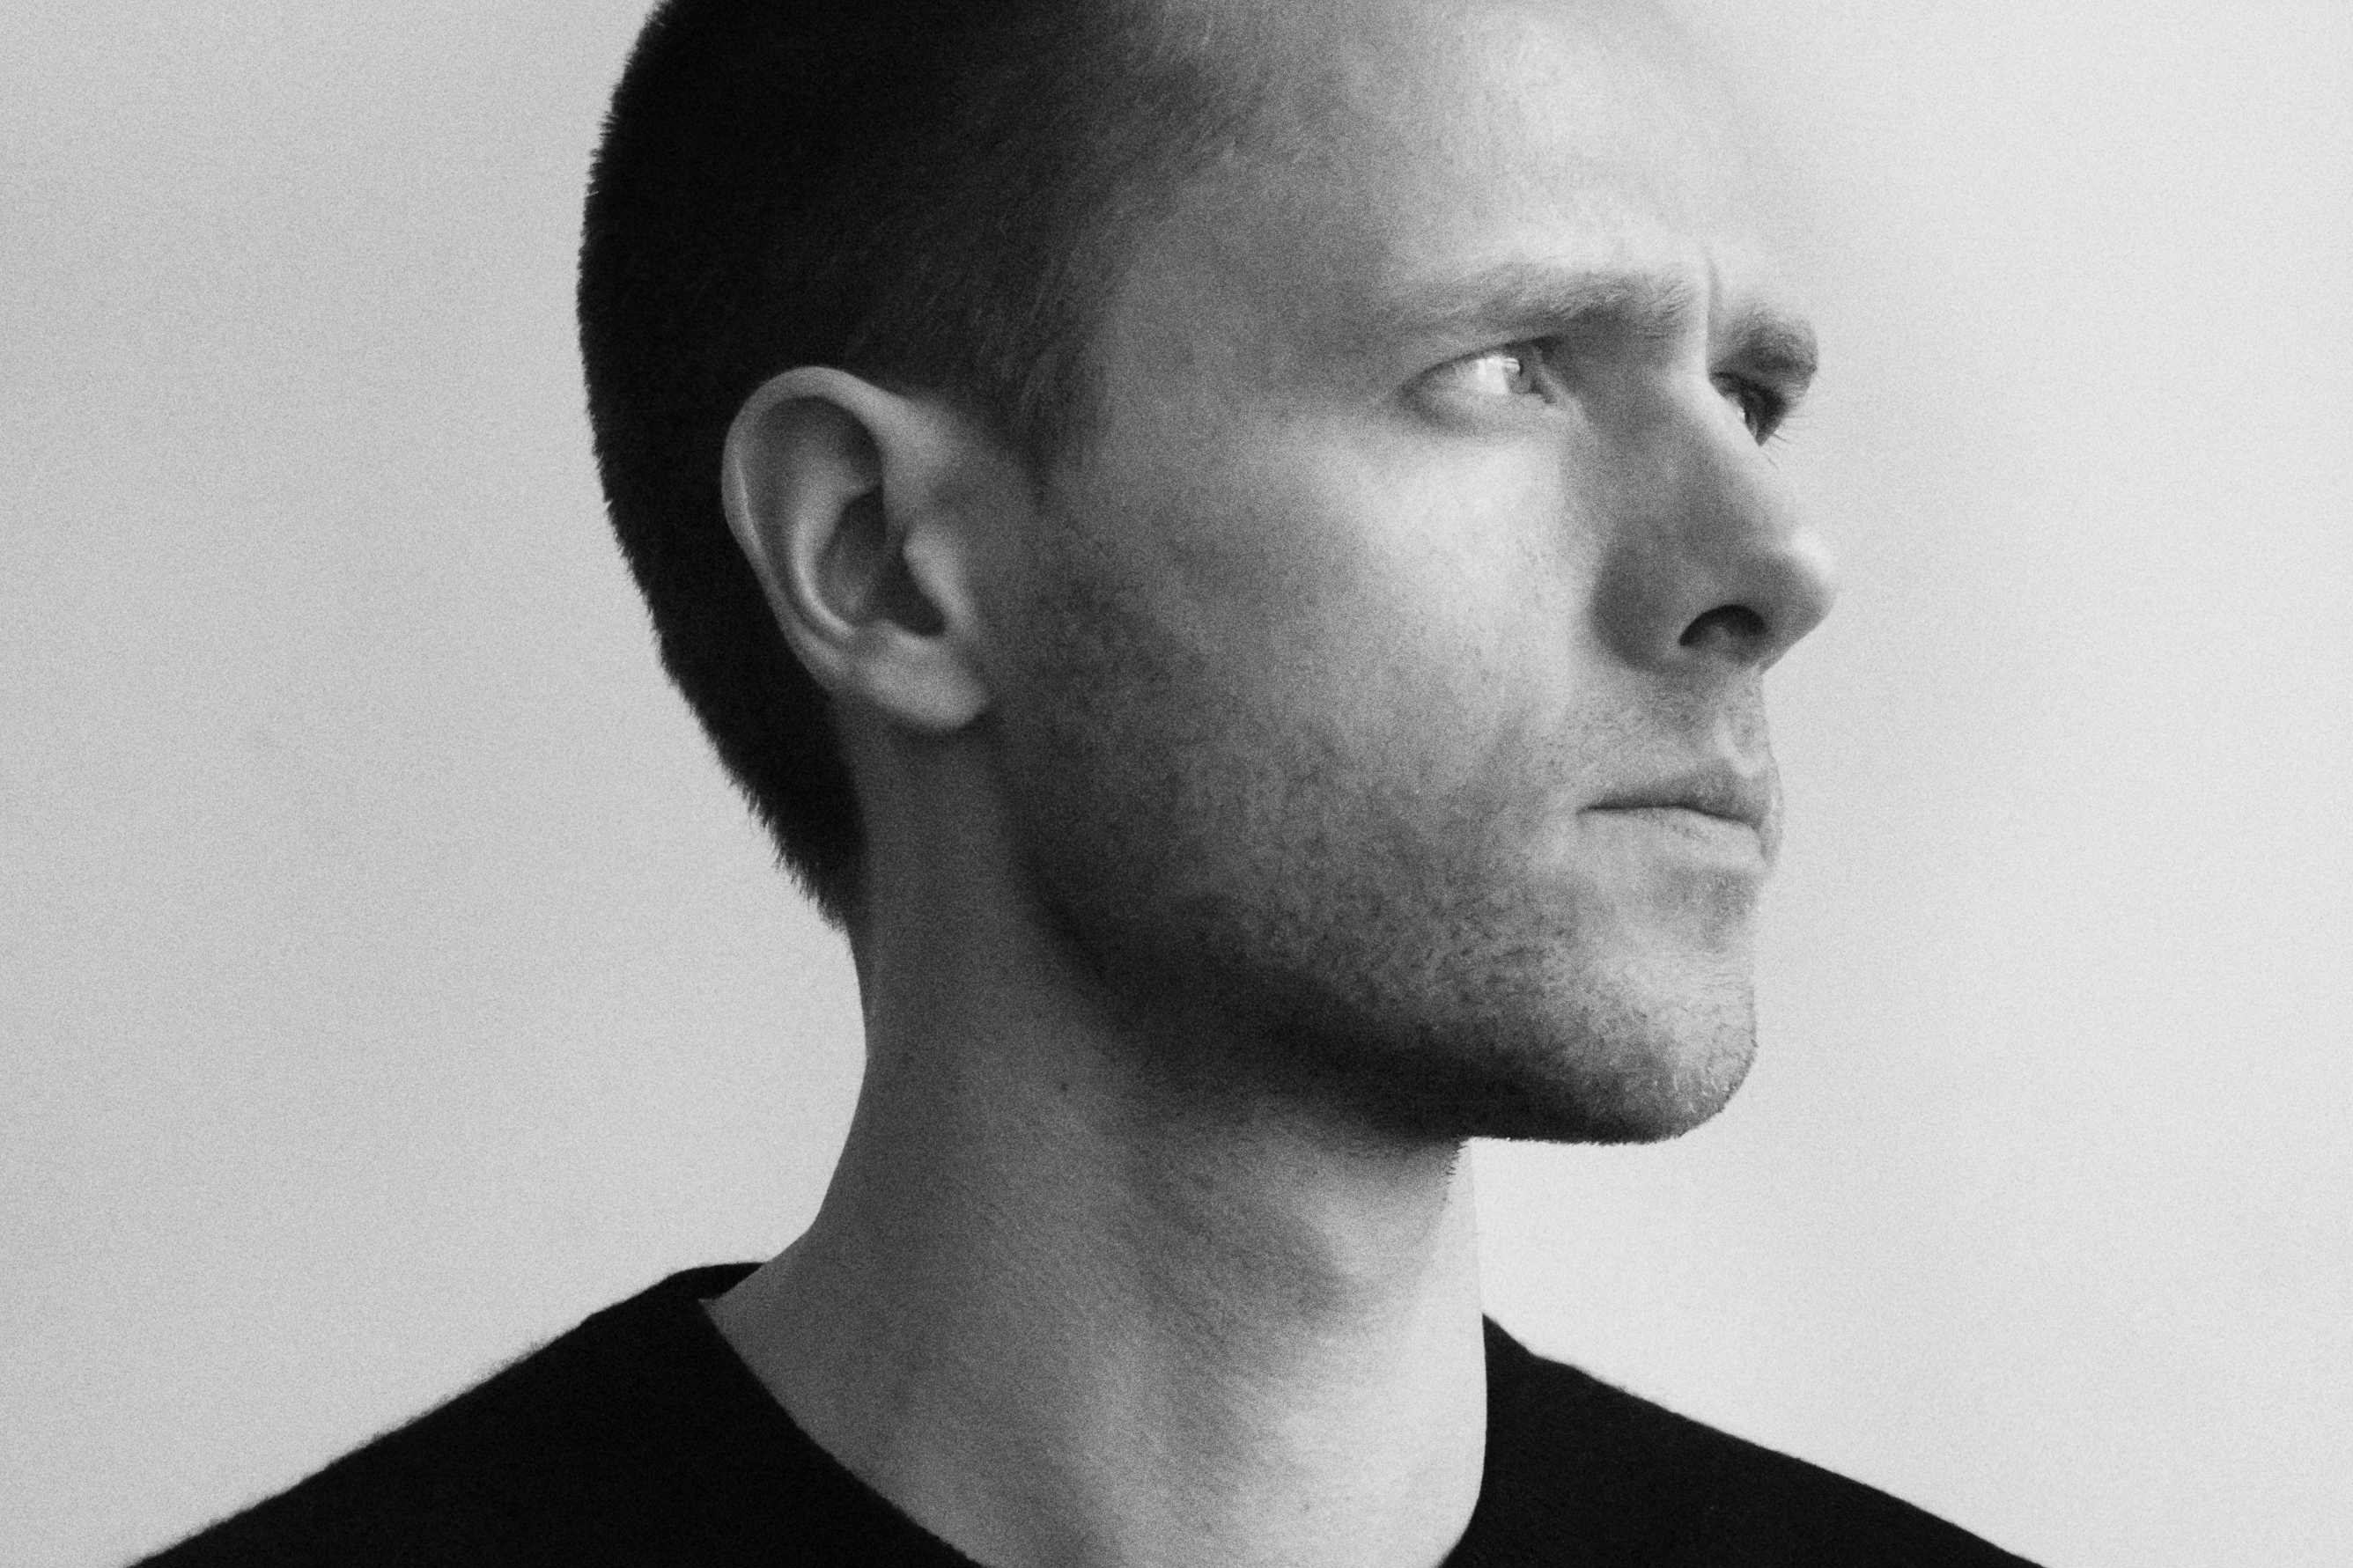 Tim Coppens, Paul Smith and More to Appear at Pitti Uomo 91